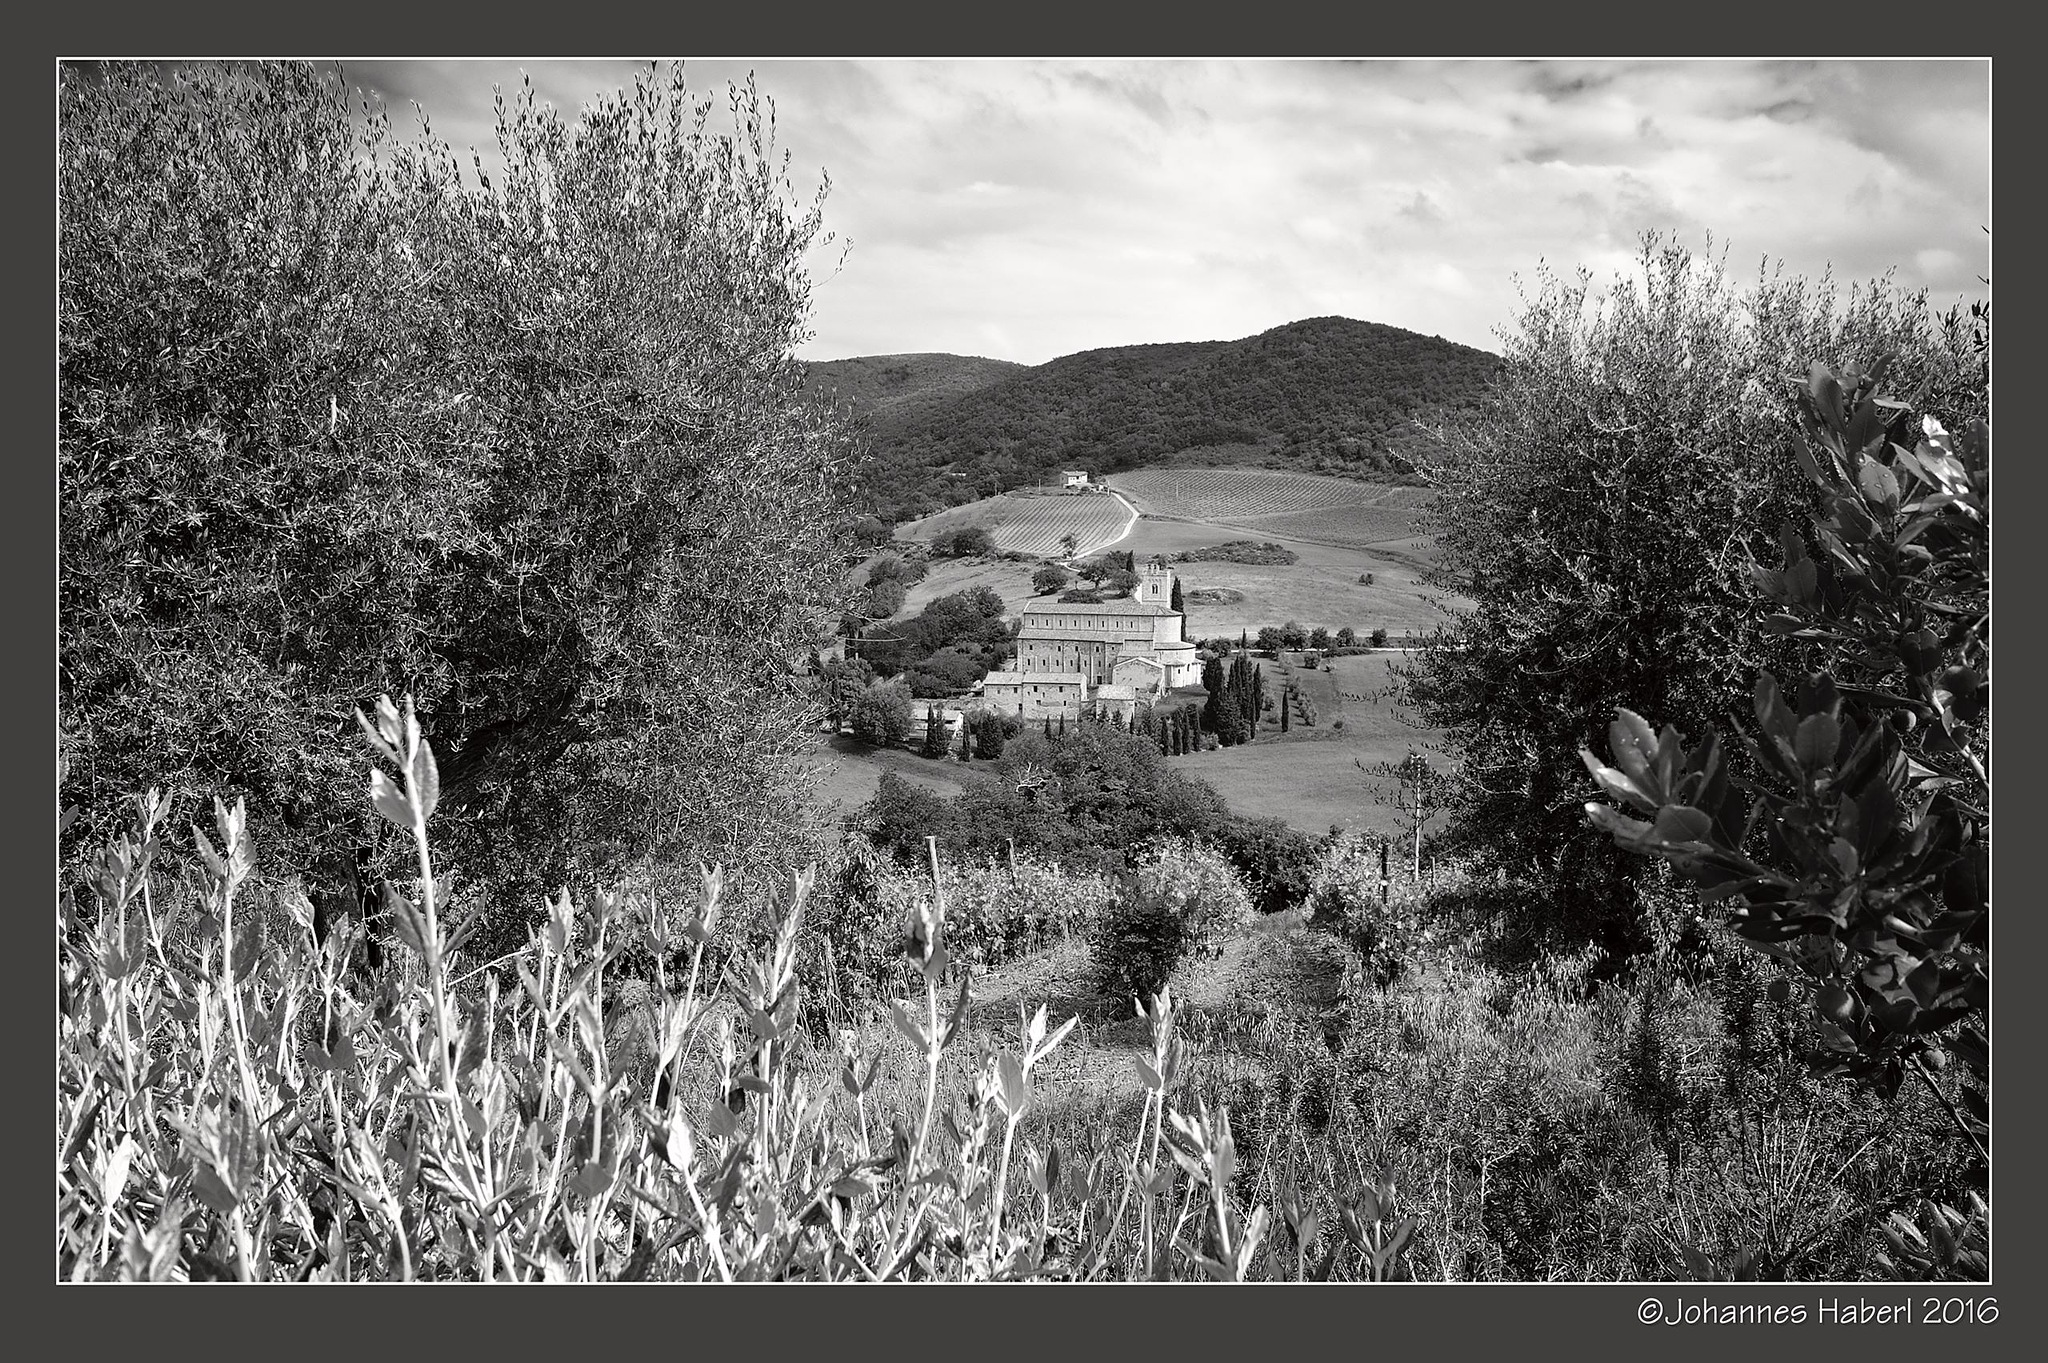 San Antimo - view from Castelnuovo dell'Abate by Johannes Haberl